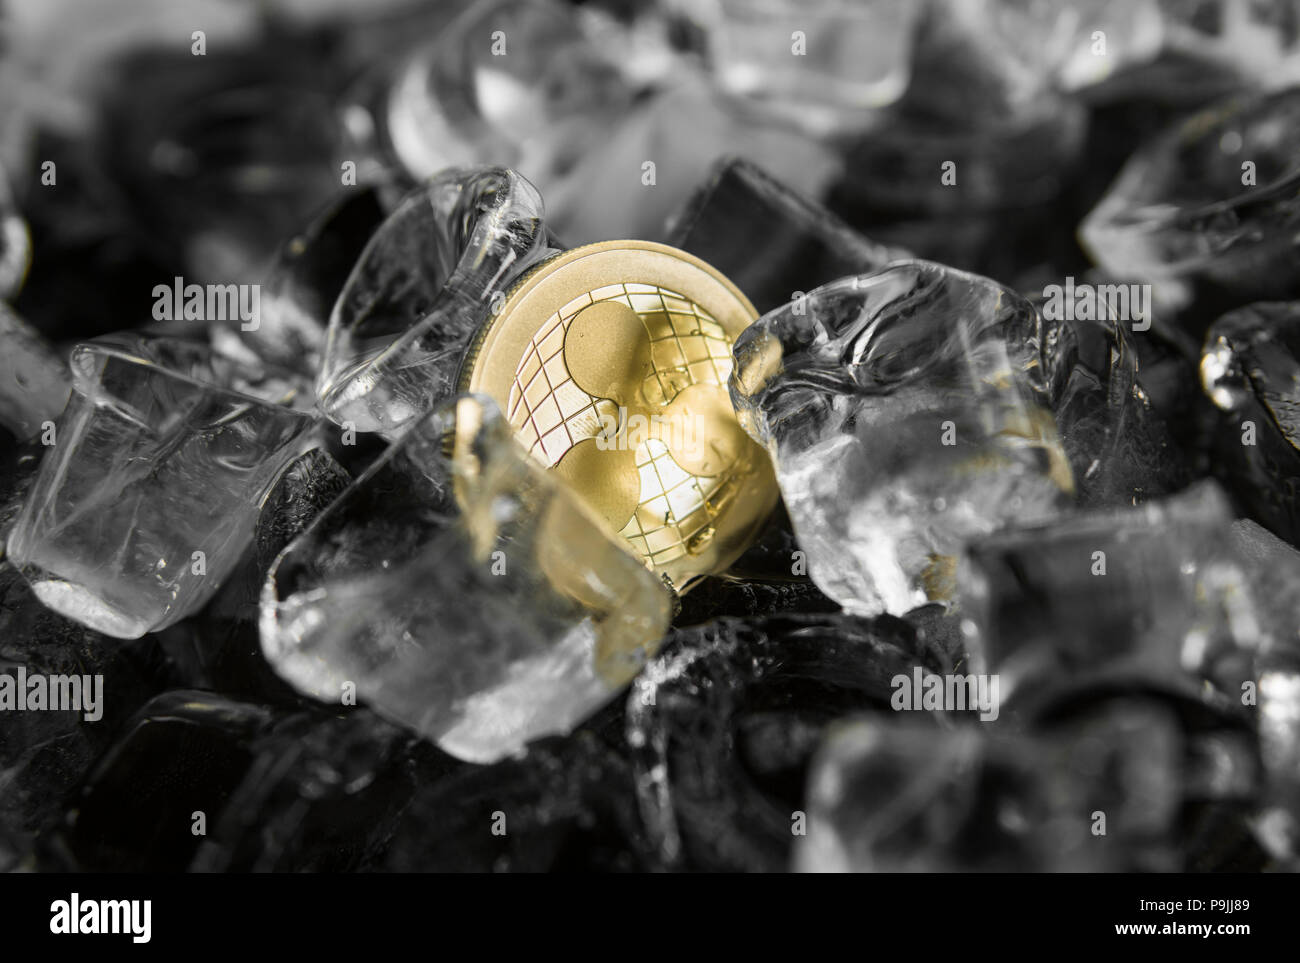 Gold ripple coin on ice background. The concept of the exchange in winter. Freeze. Blockchain mining. Digital money and virtual cryptocurrency concept. Iinvestment. Bussiness, commercial. - Stock Image